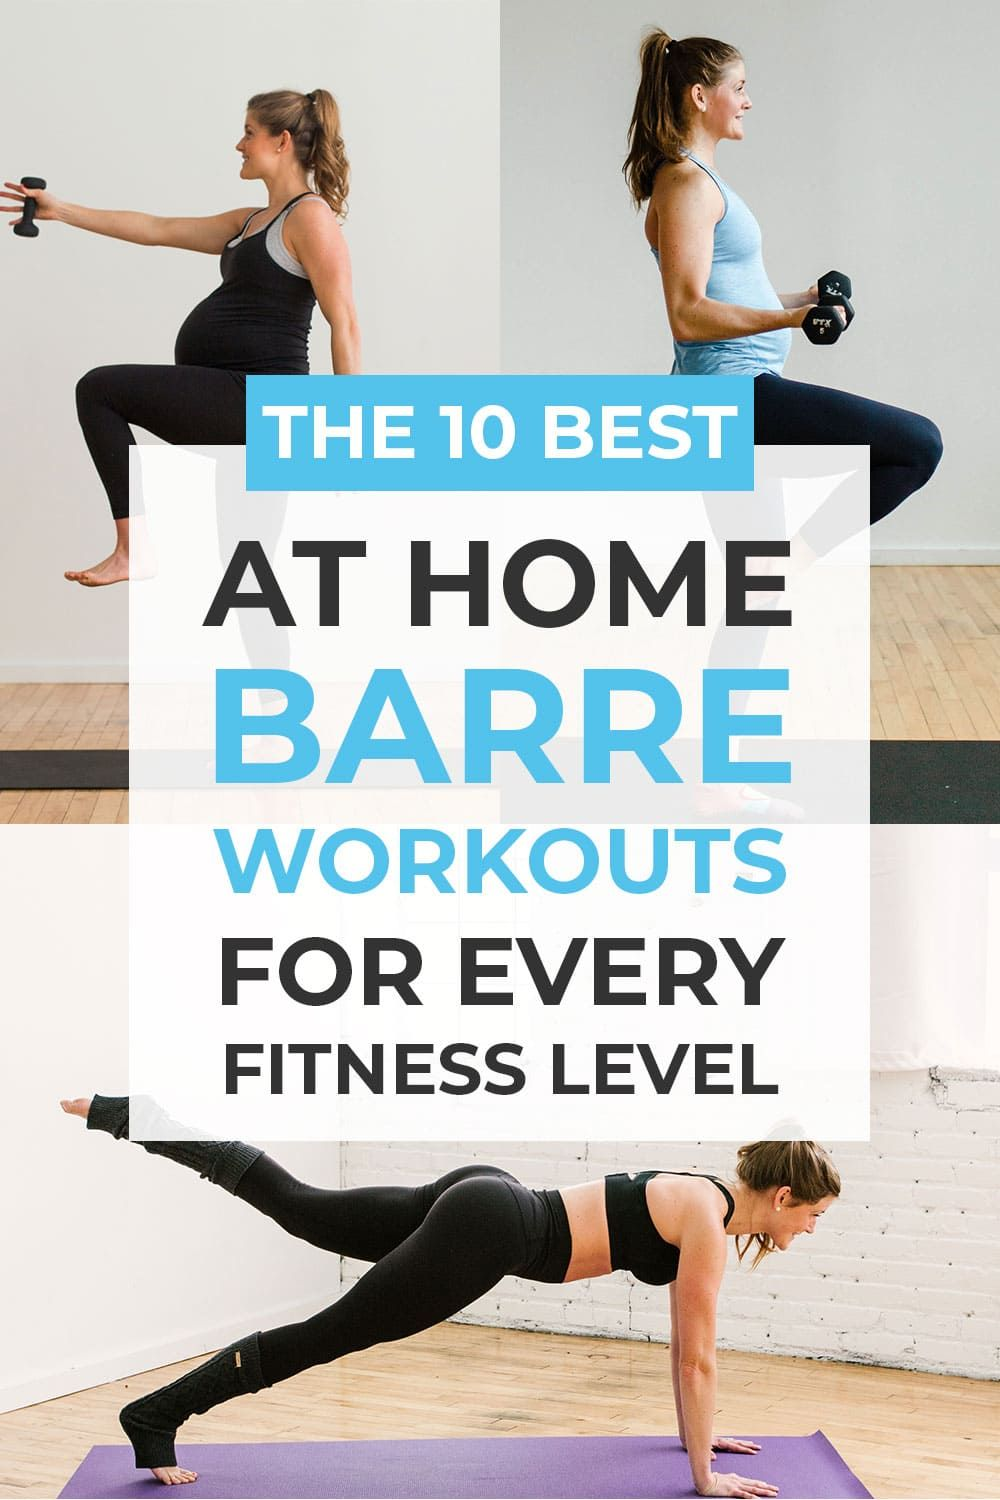 10 Barre Workouts For Every Fitness Level